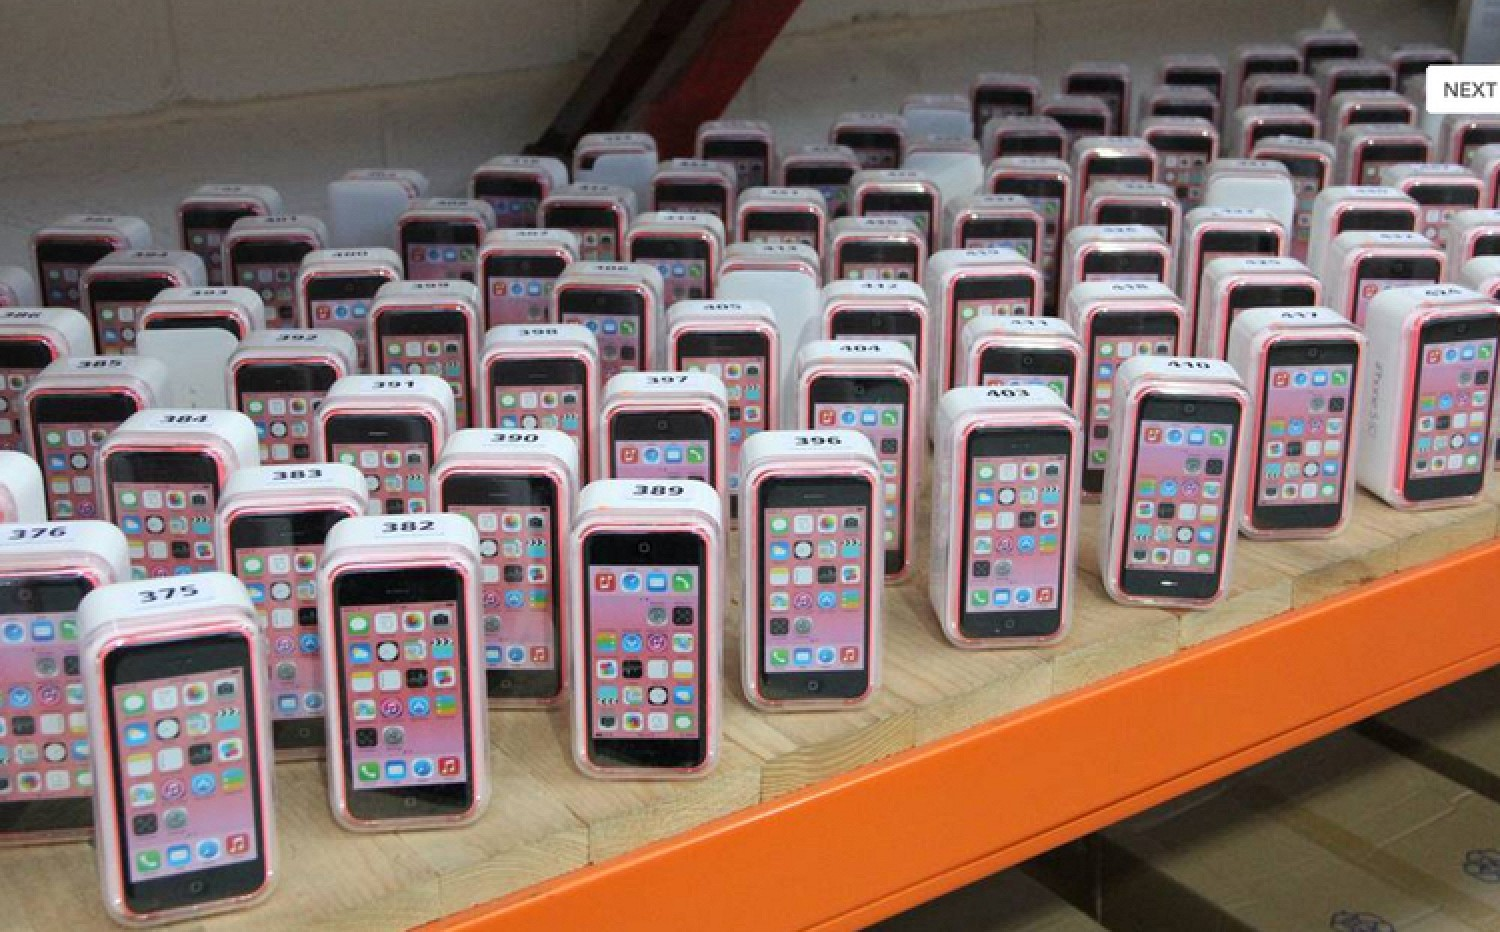 Online Car Auctions >> Phones4U iPhone and iPad Inventory Being Liquidated at Low Prices by UK Auction House - MacRumors